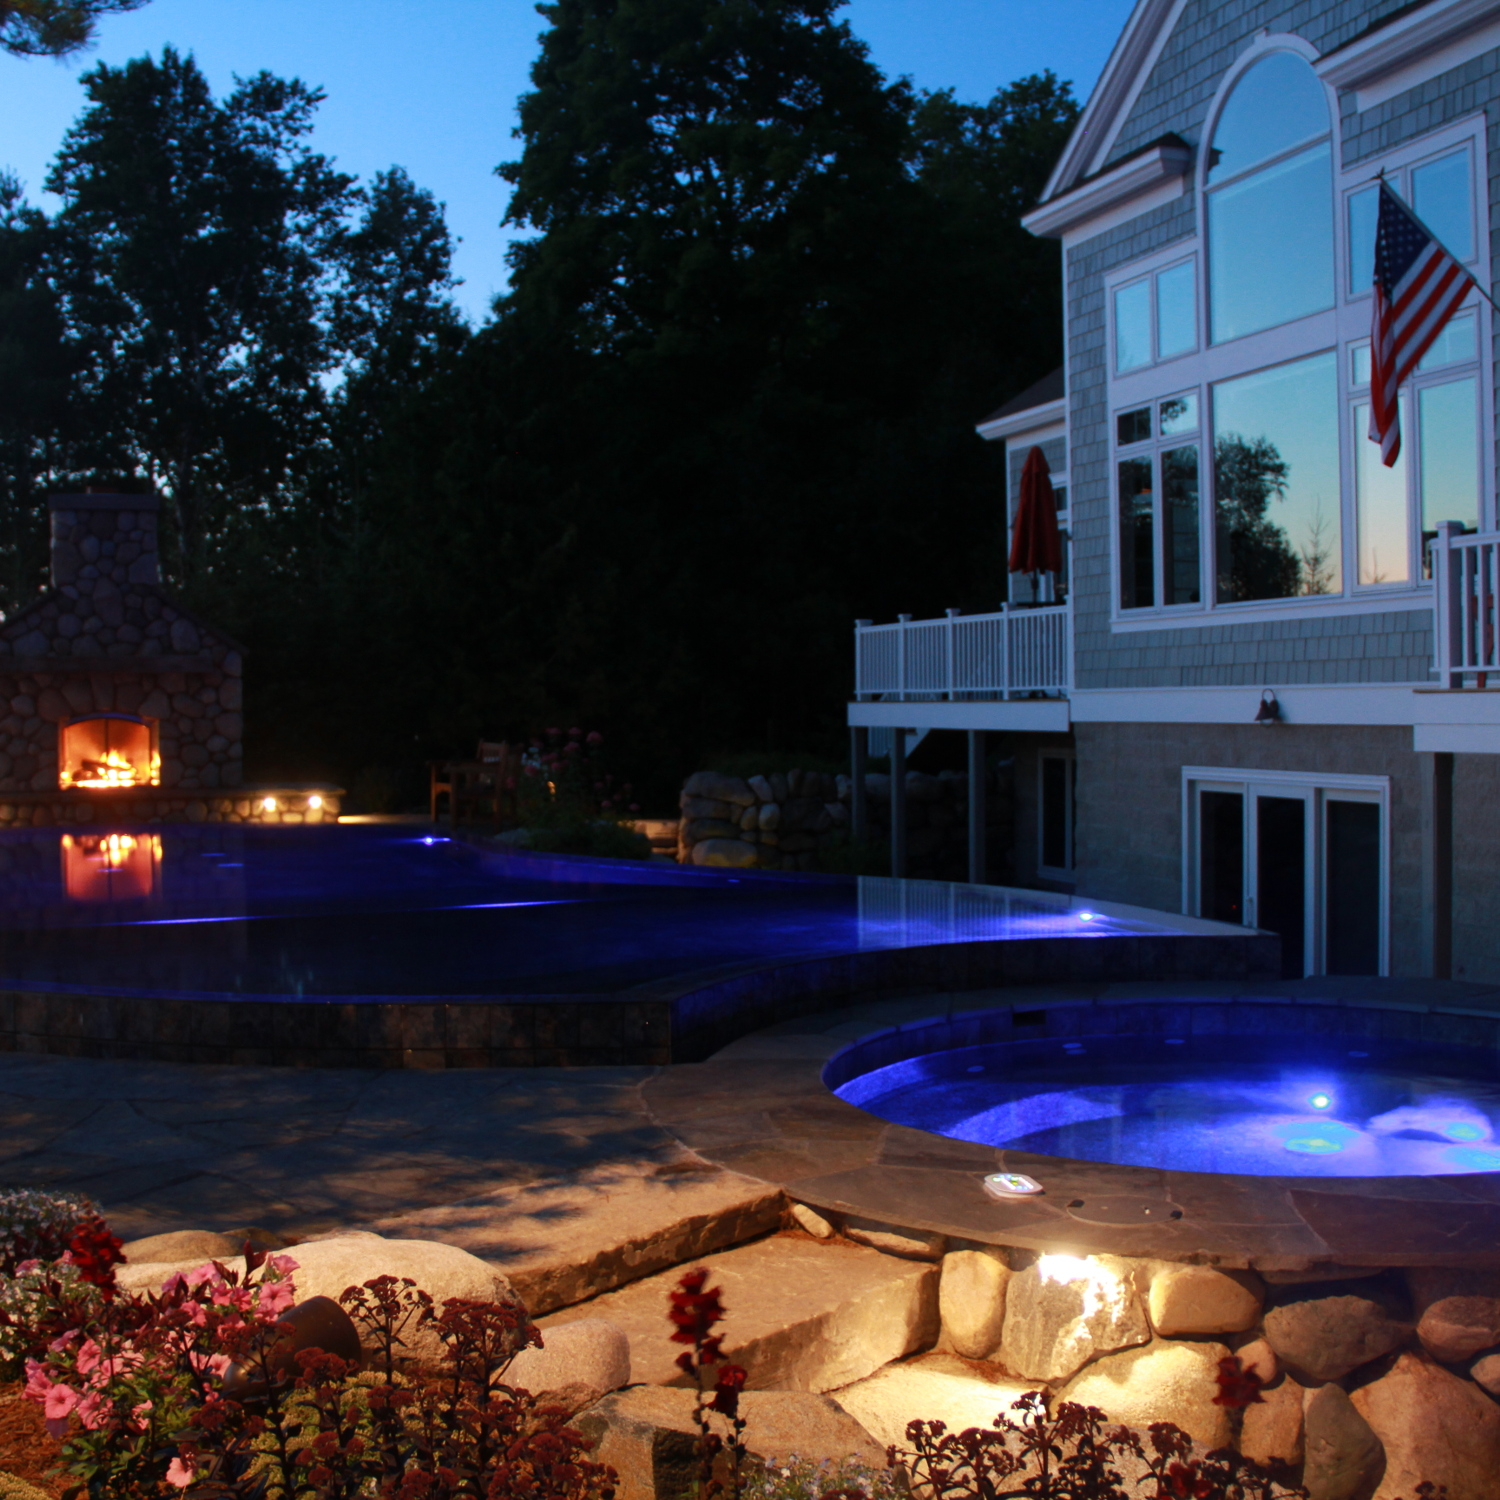 pools, spas, shoreline, fountains, ponds - lighting